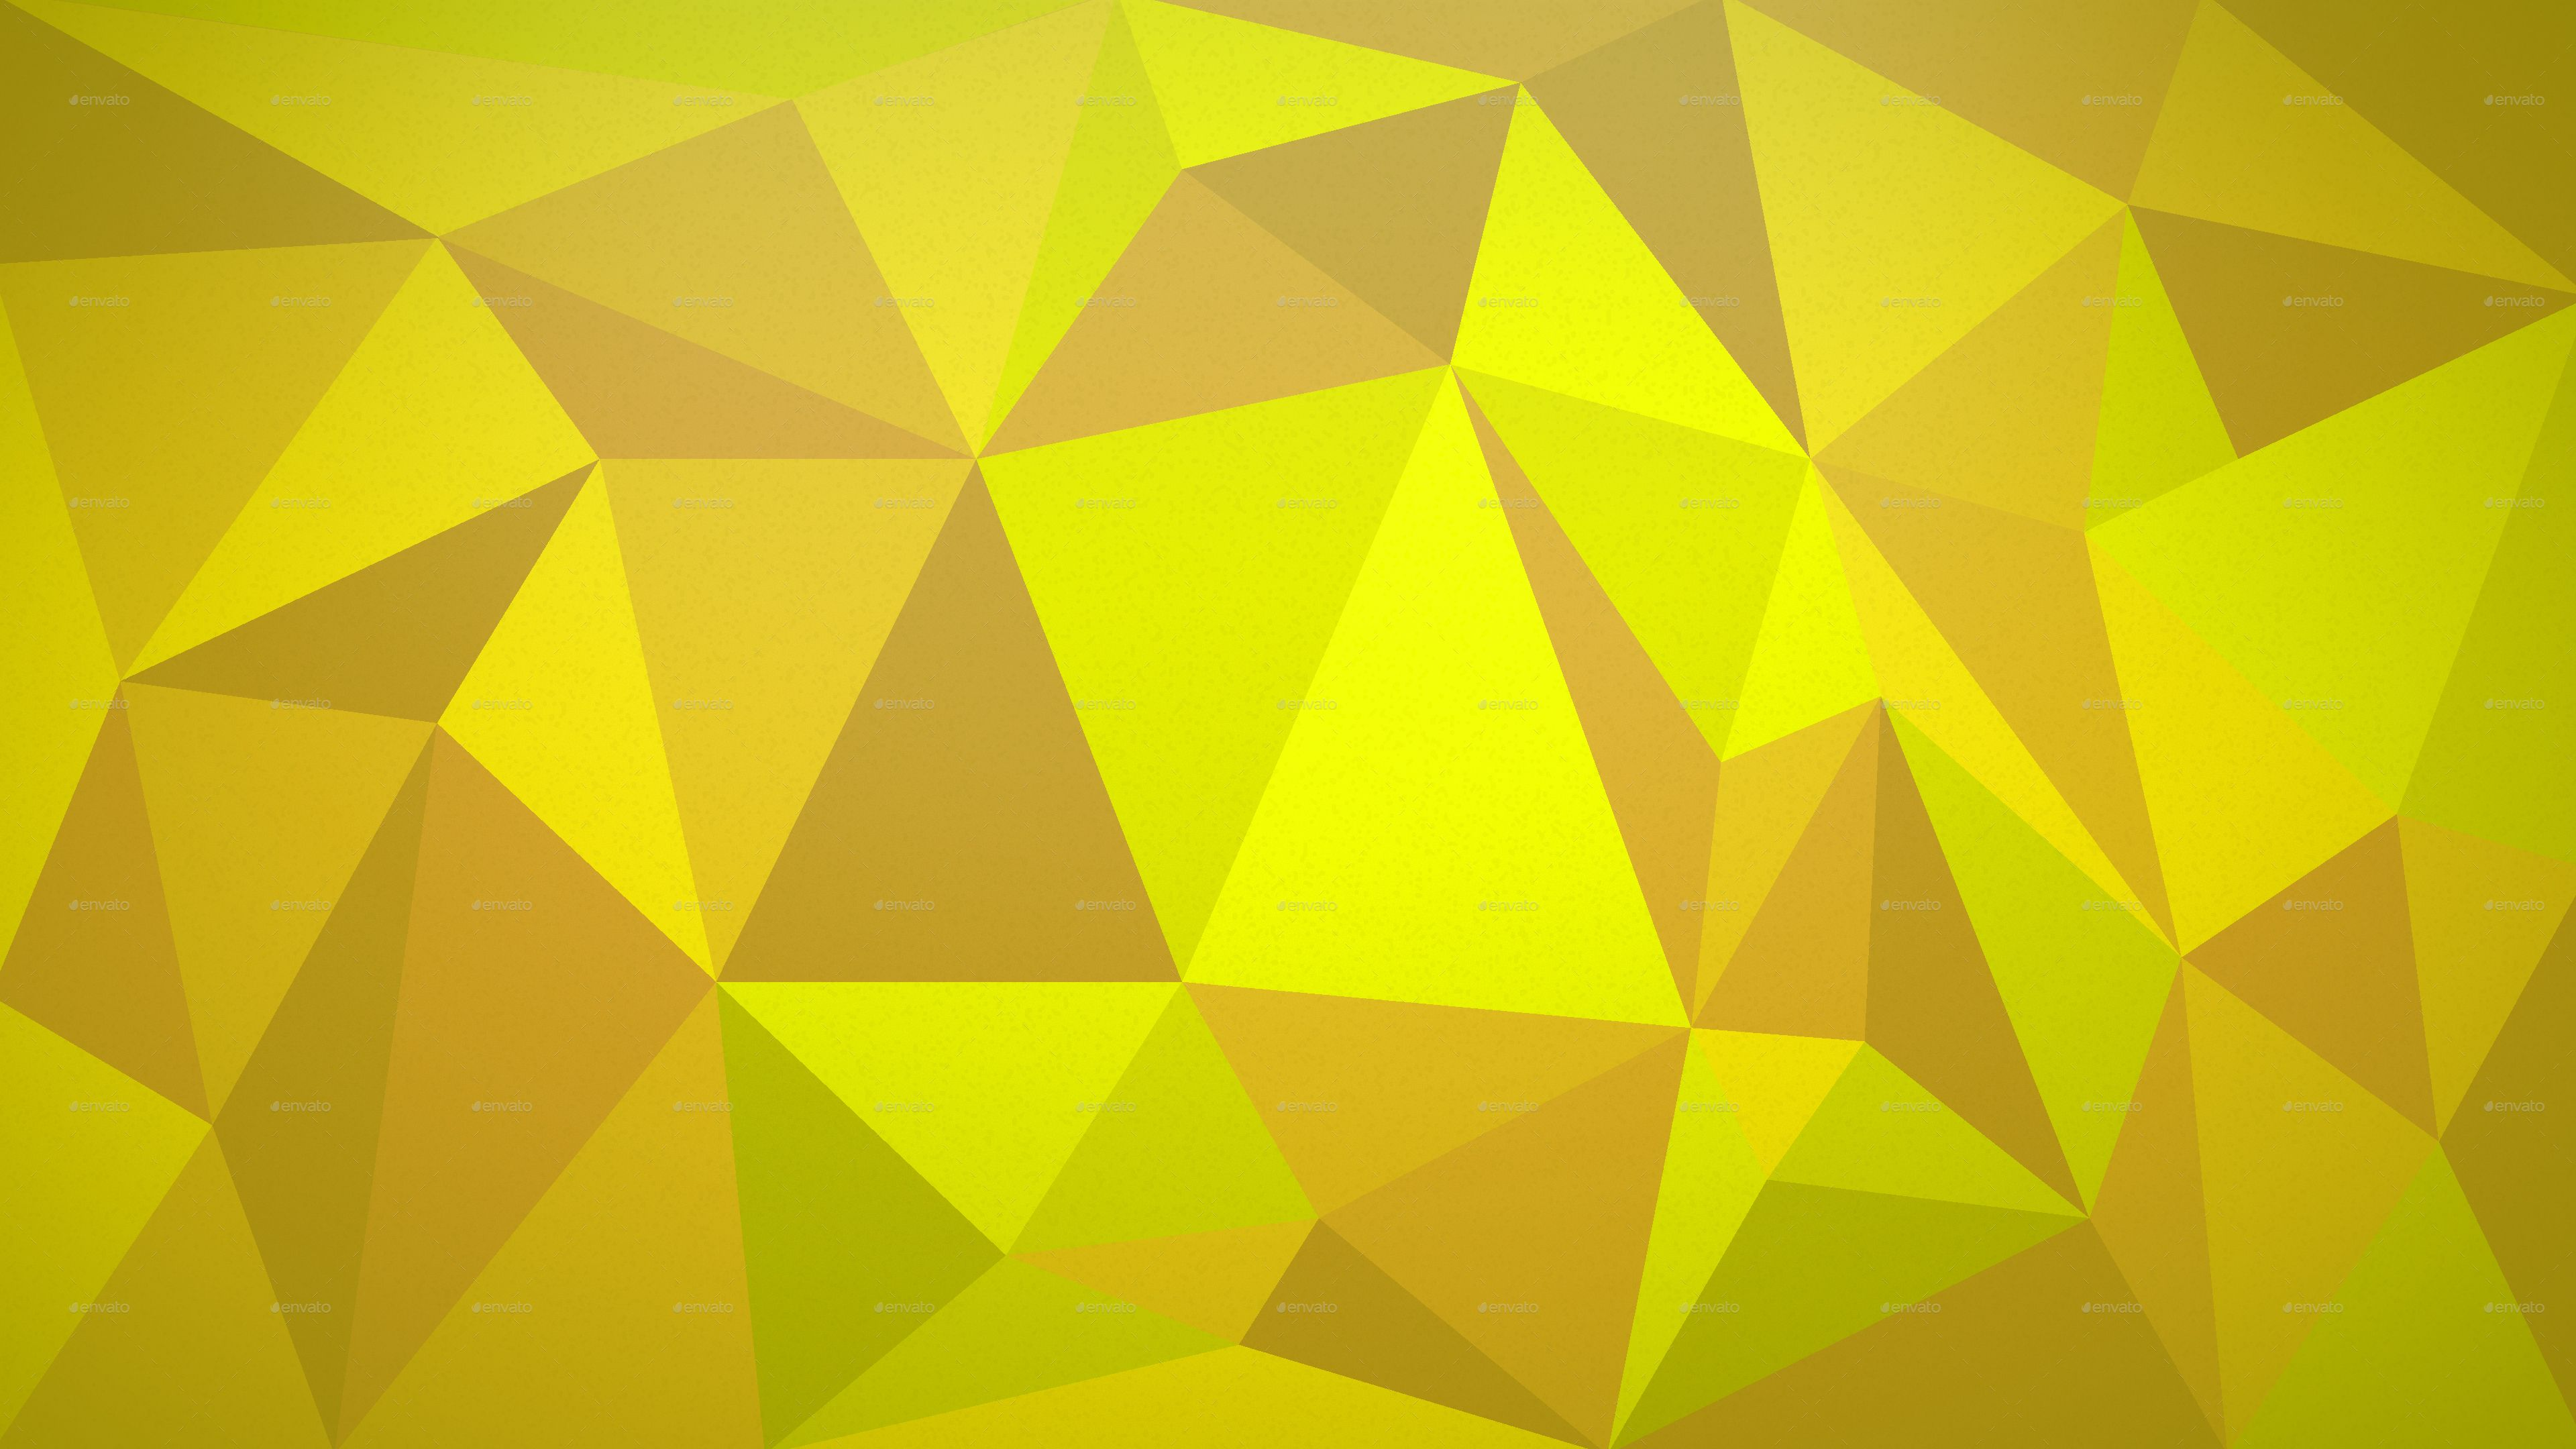 4k Polygonal Wallpapers Wallpaper Polygon Abstract Artwork